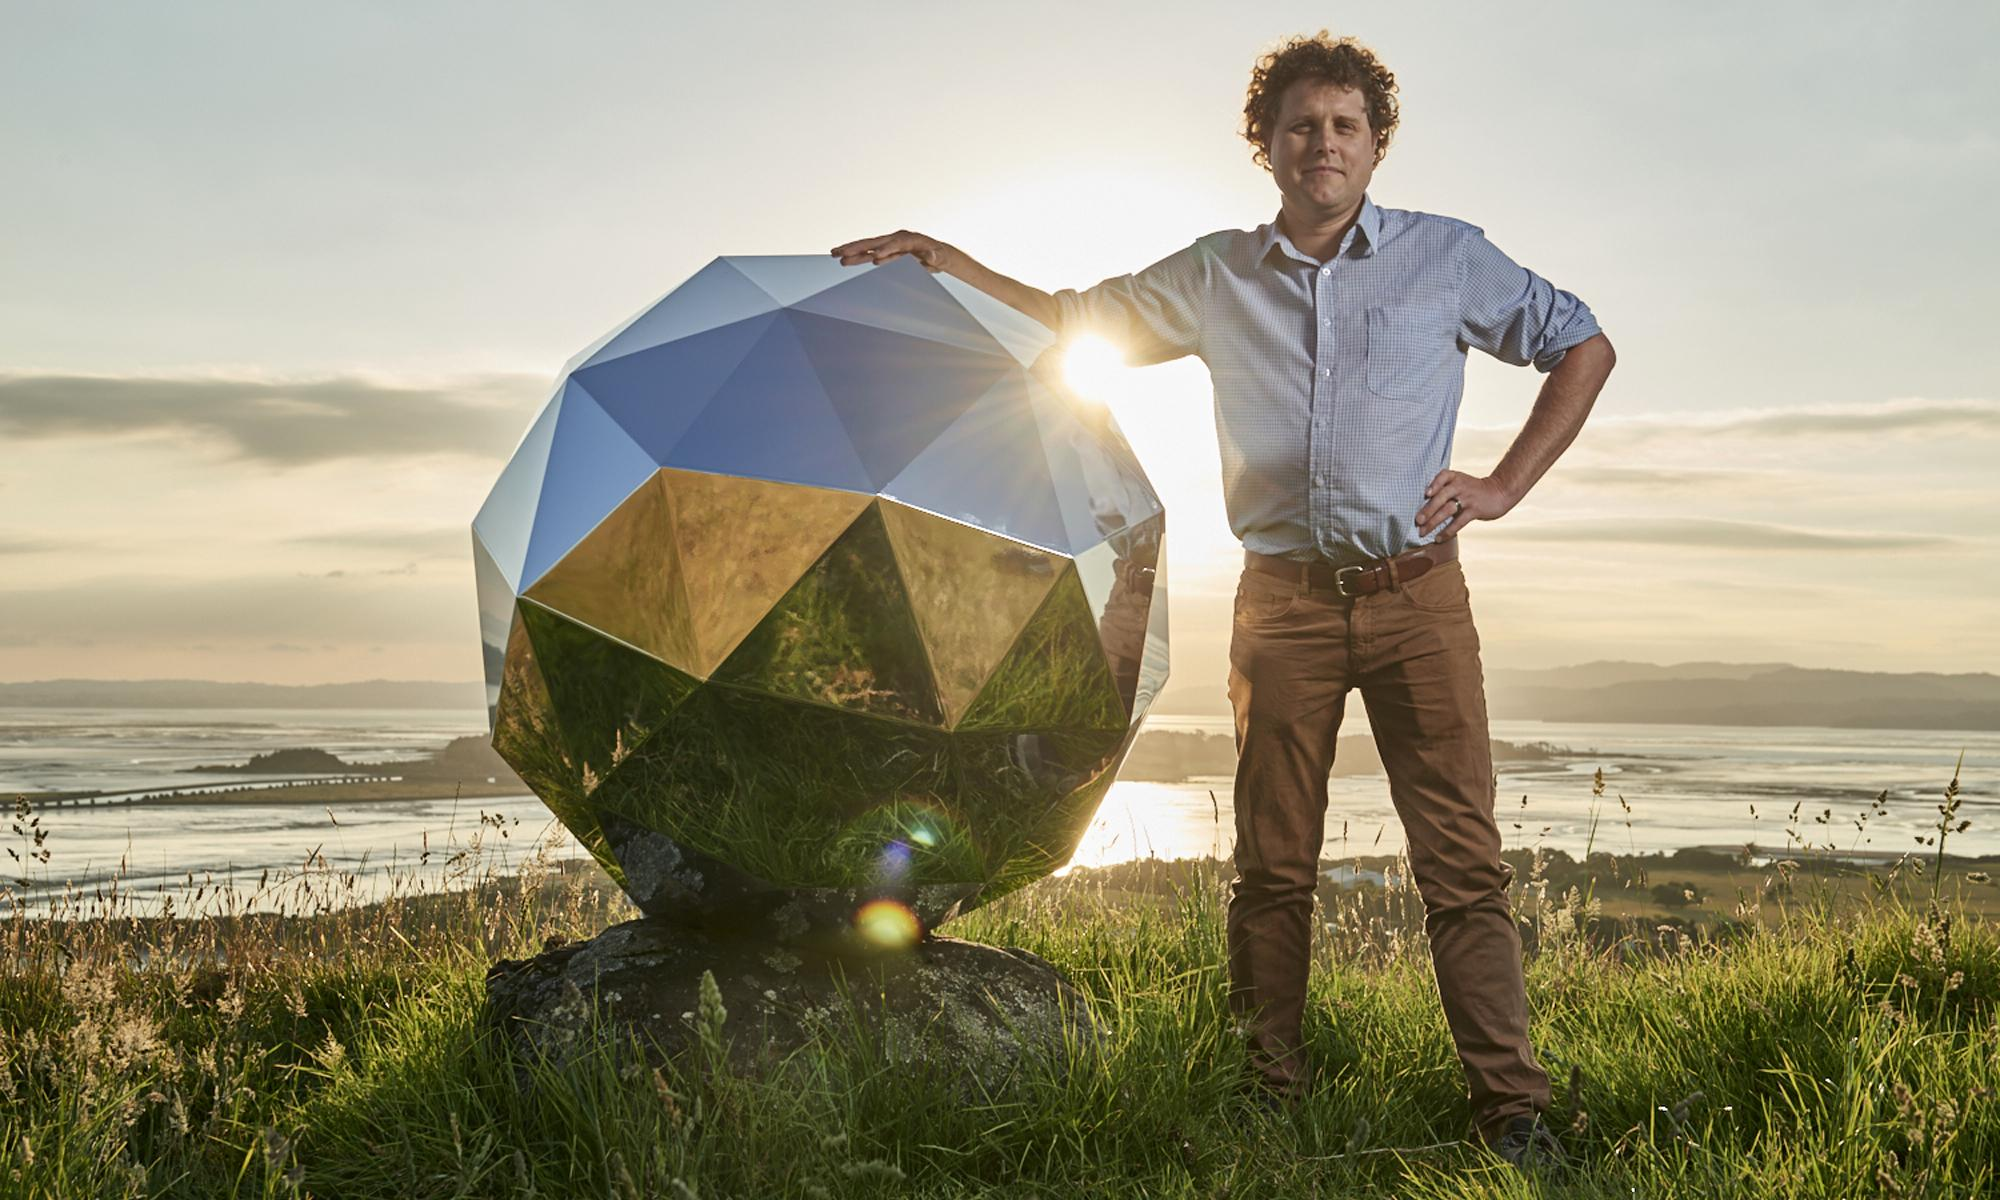 One man's mission to conquer space